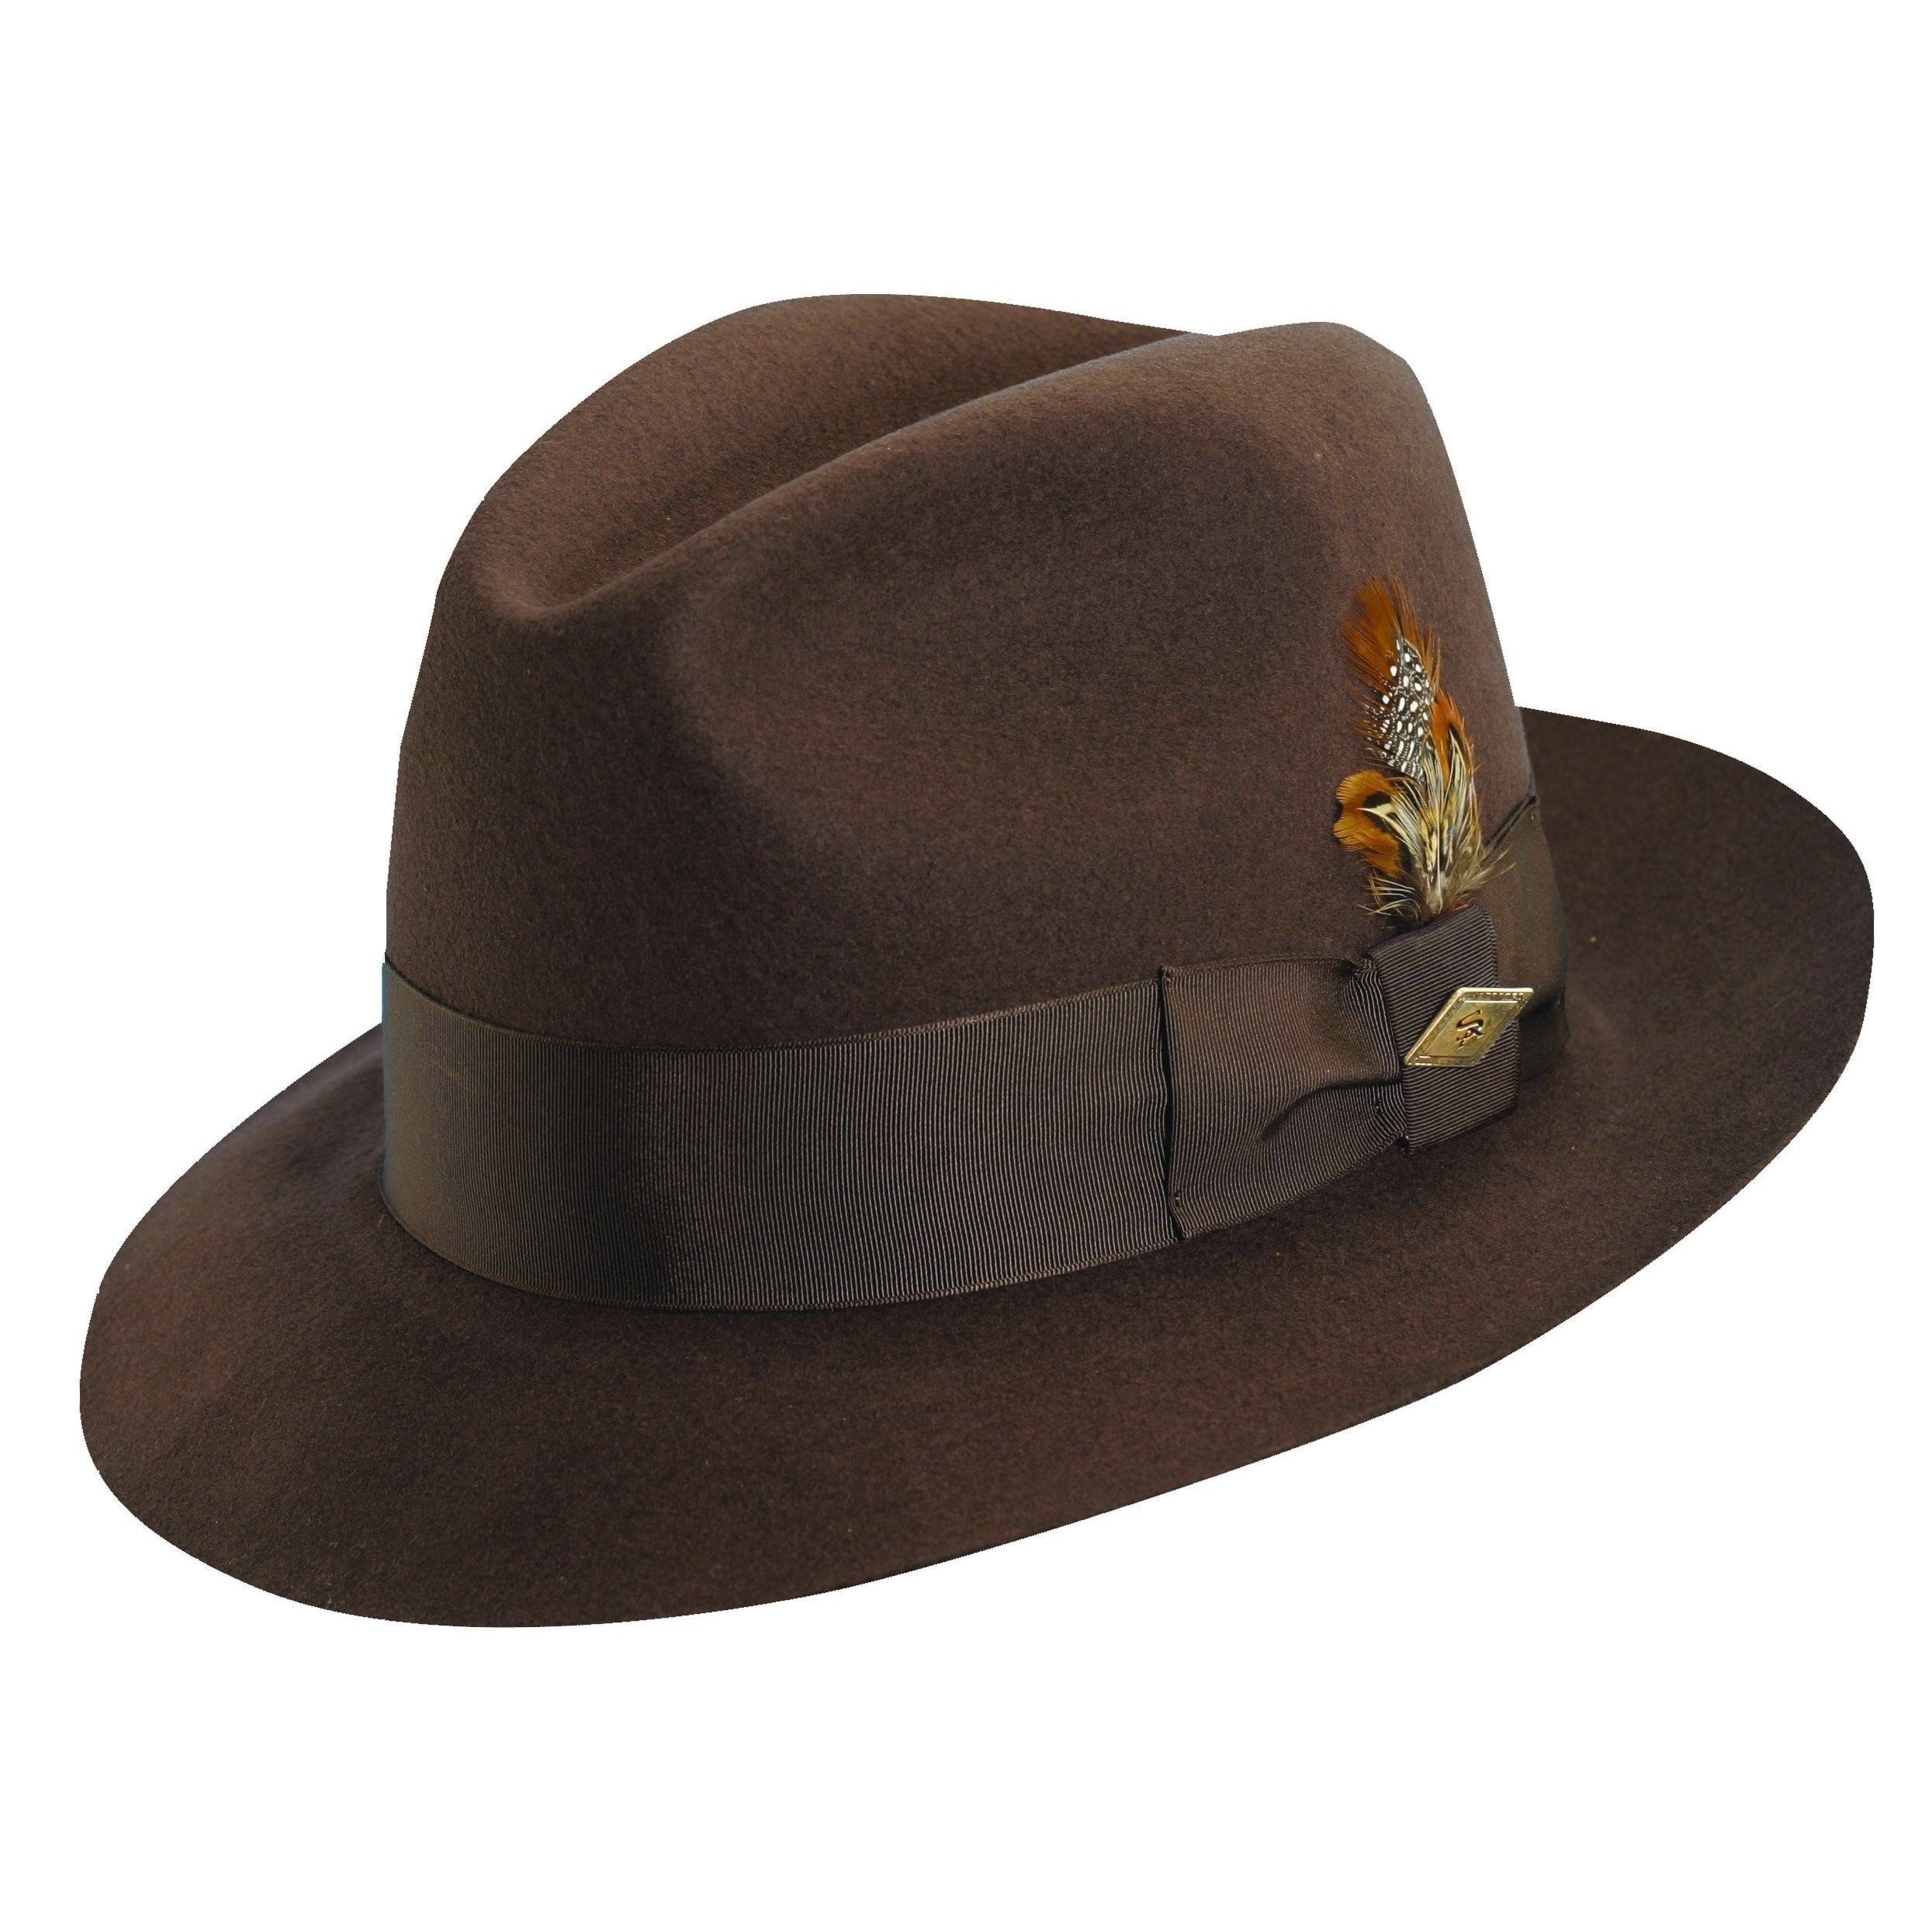 56f4e3d739c Stacy Adams Cannery Row Wool Fedora Hat (Chocolate (Brown)